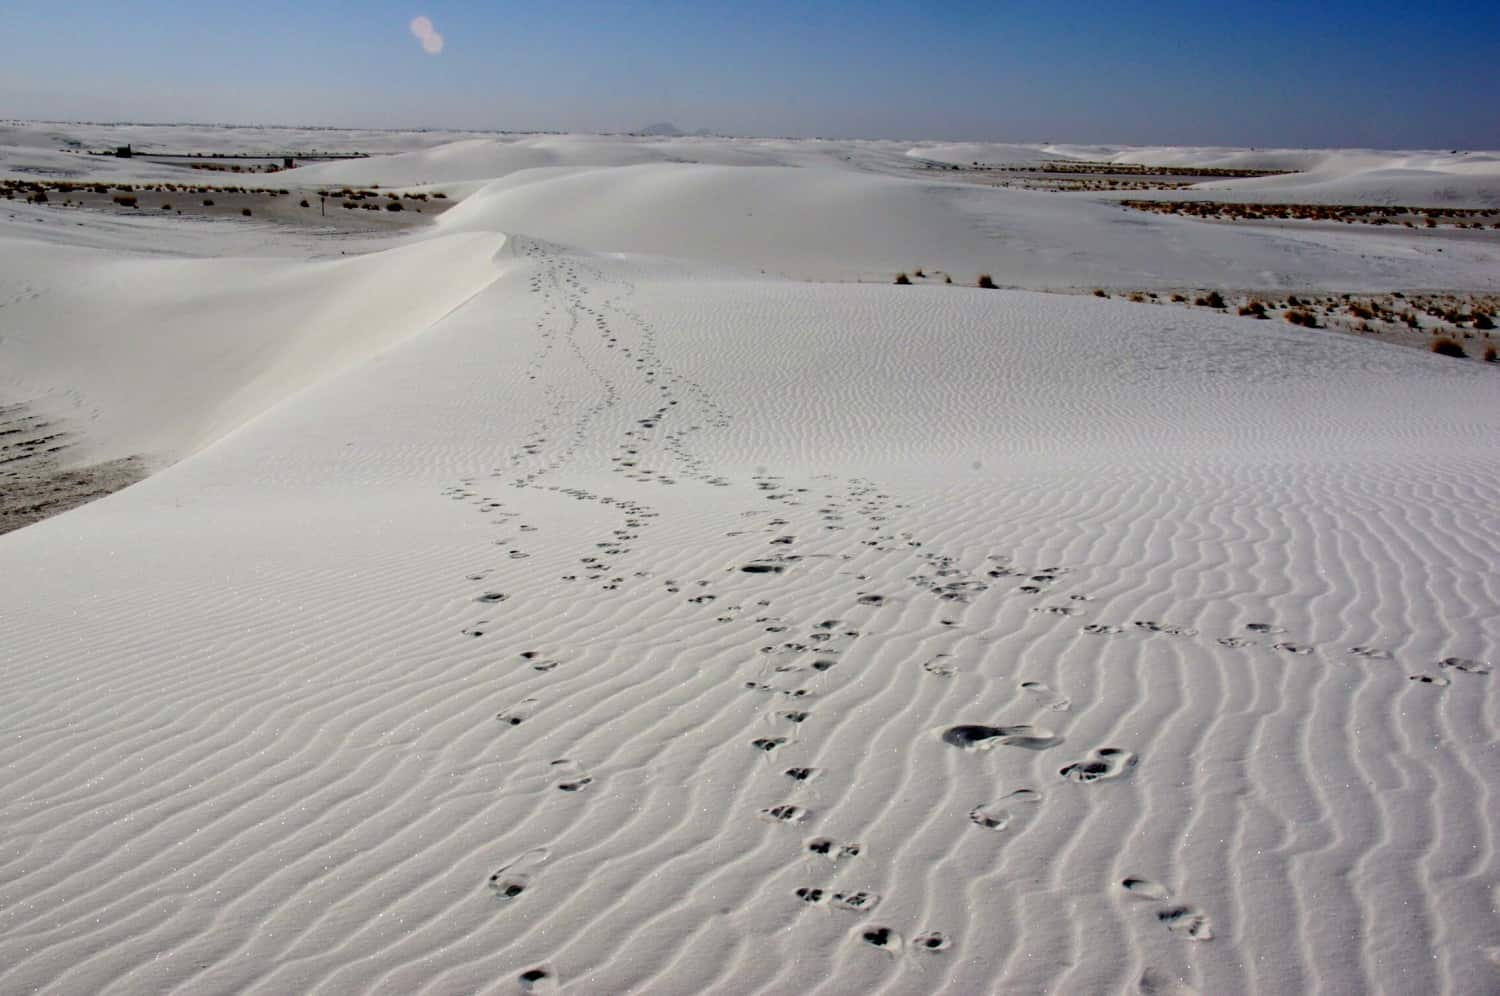 Footprints in the sand at White Sands National Park - Alamogordo, NM